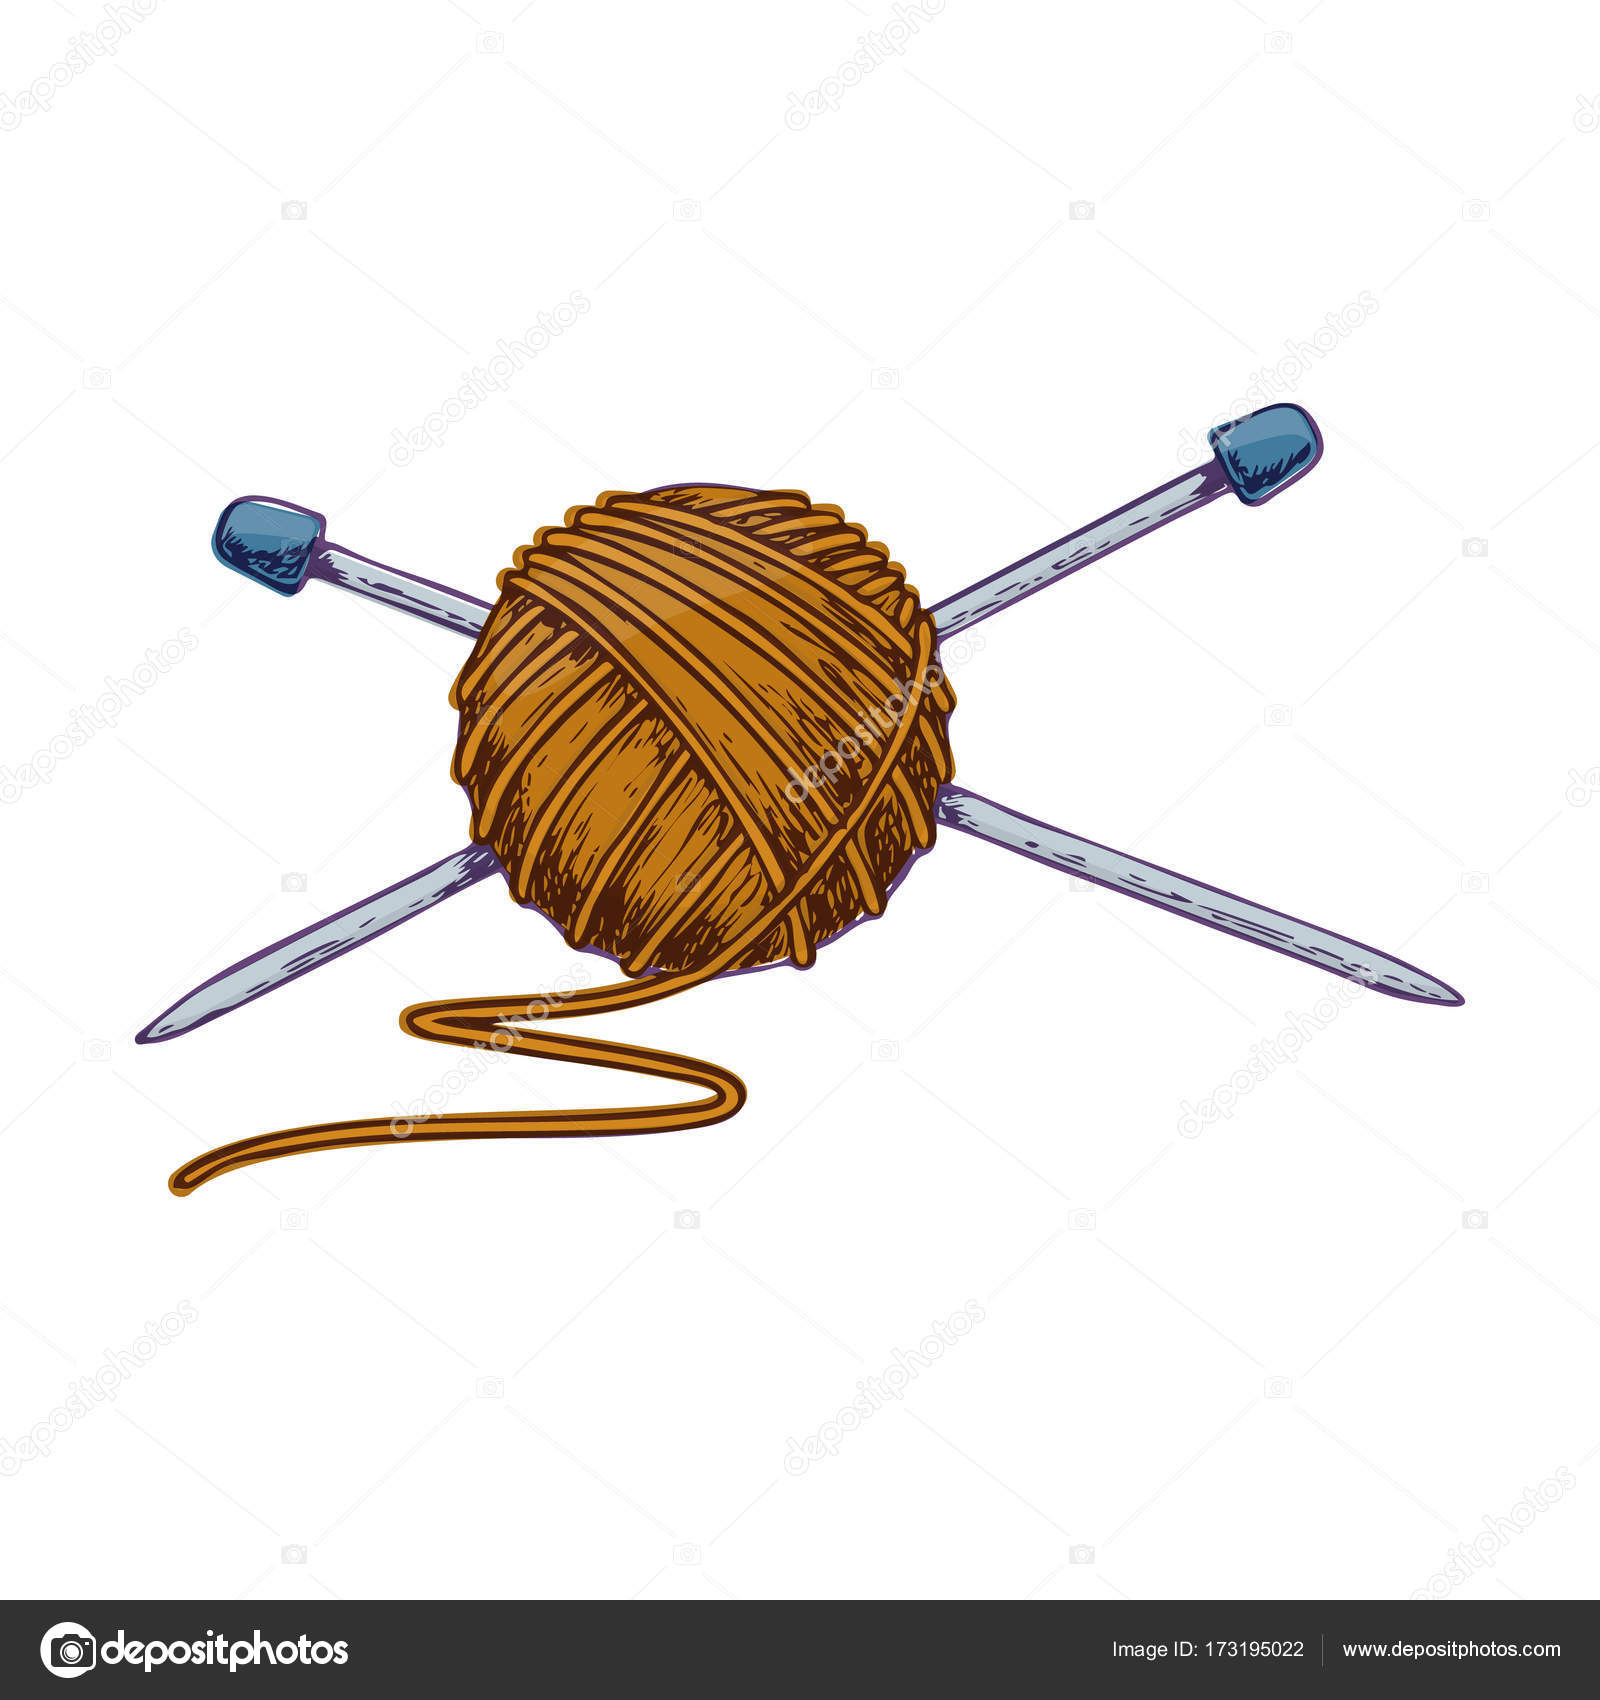 ᐈ How To Draw A Ball Of Yarn Stock Backgrounds Royalty Free Tangled Yarn Vectors Download On Depositphotos